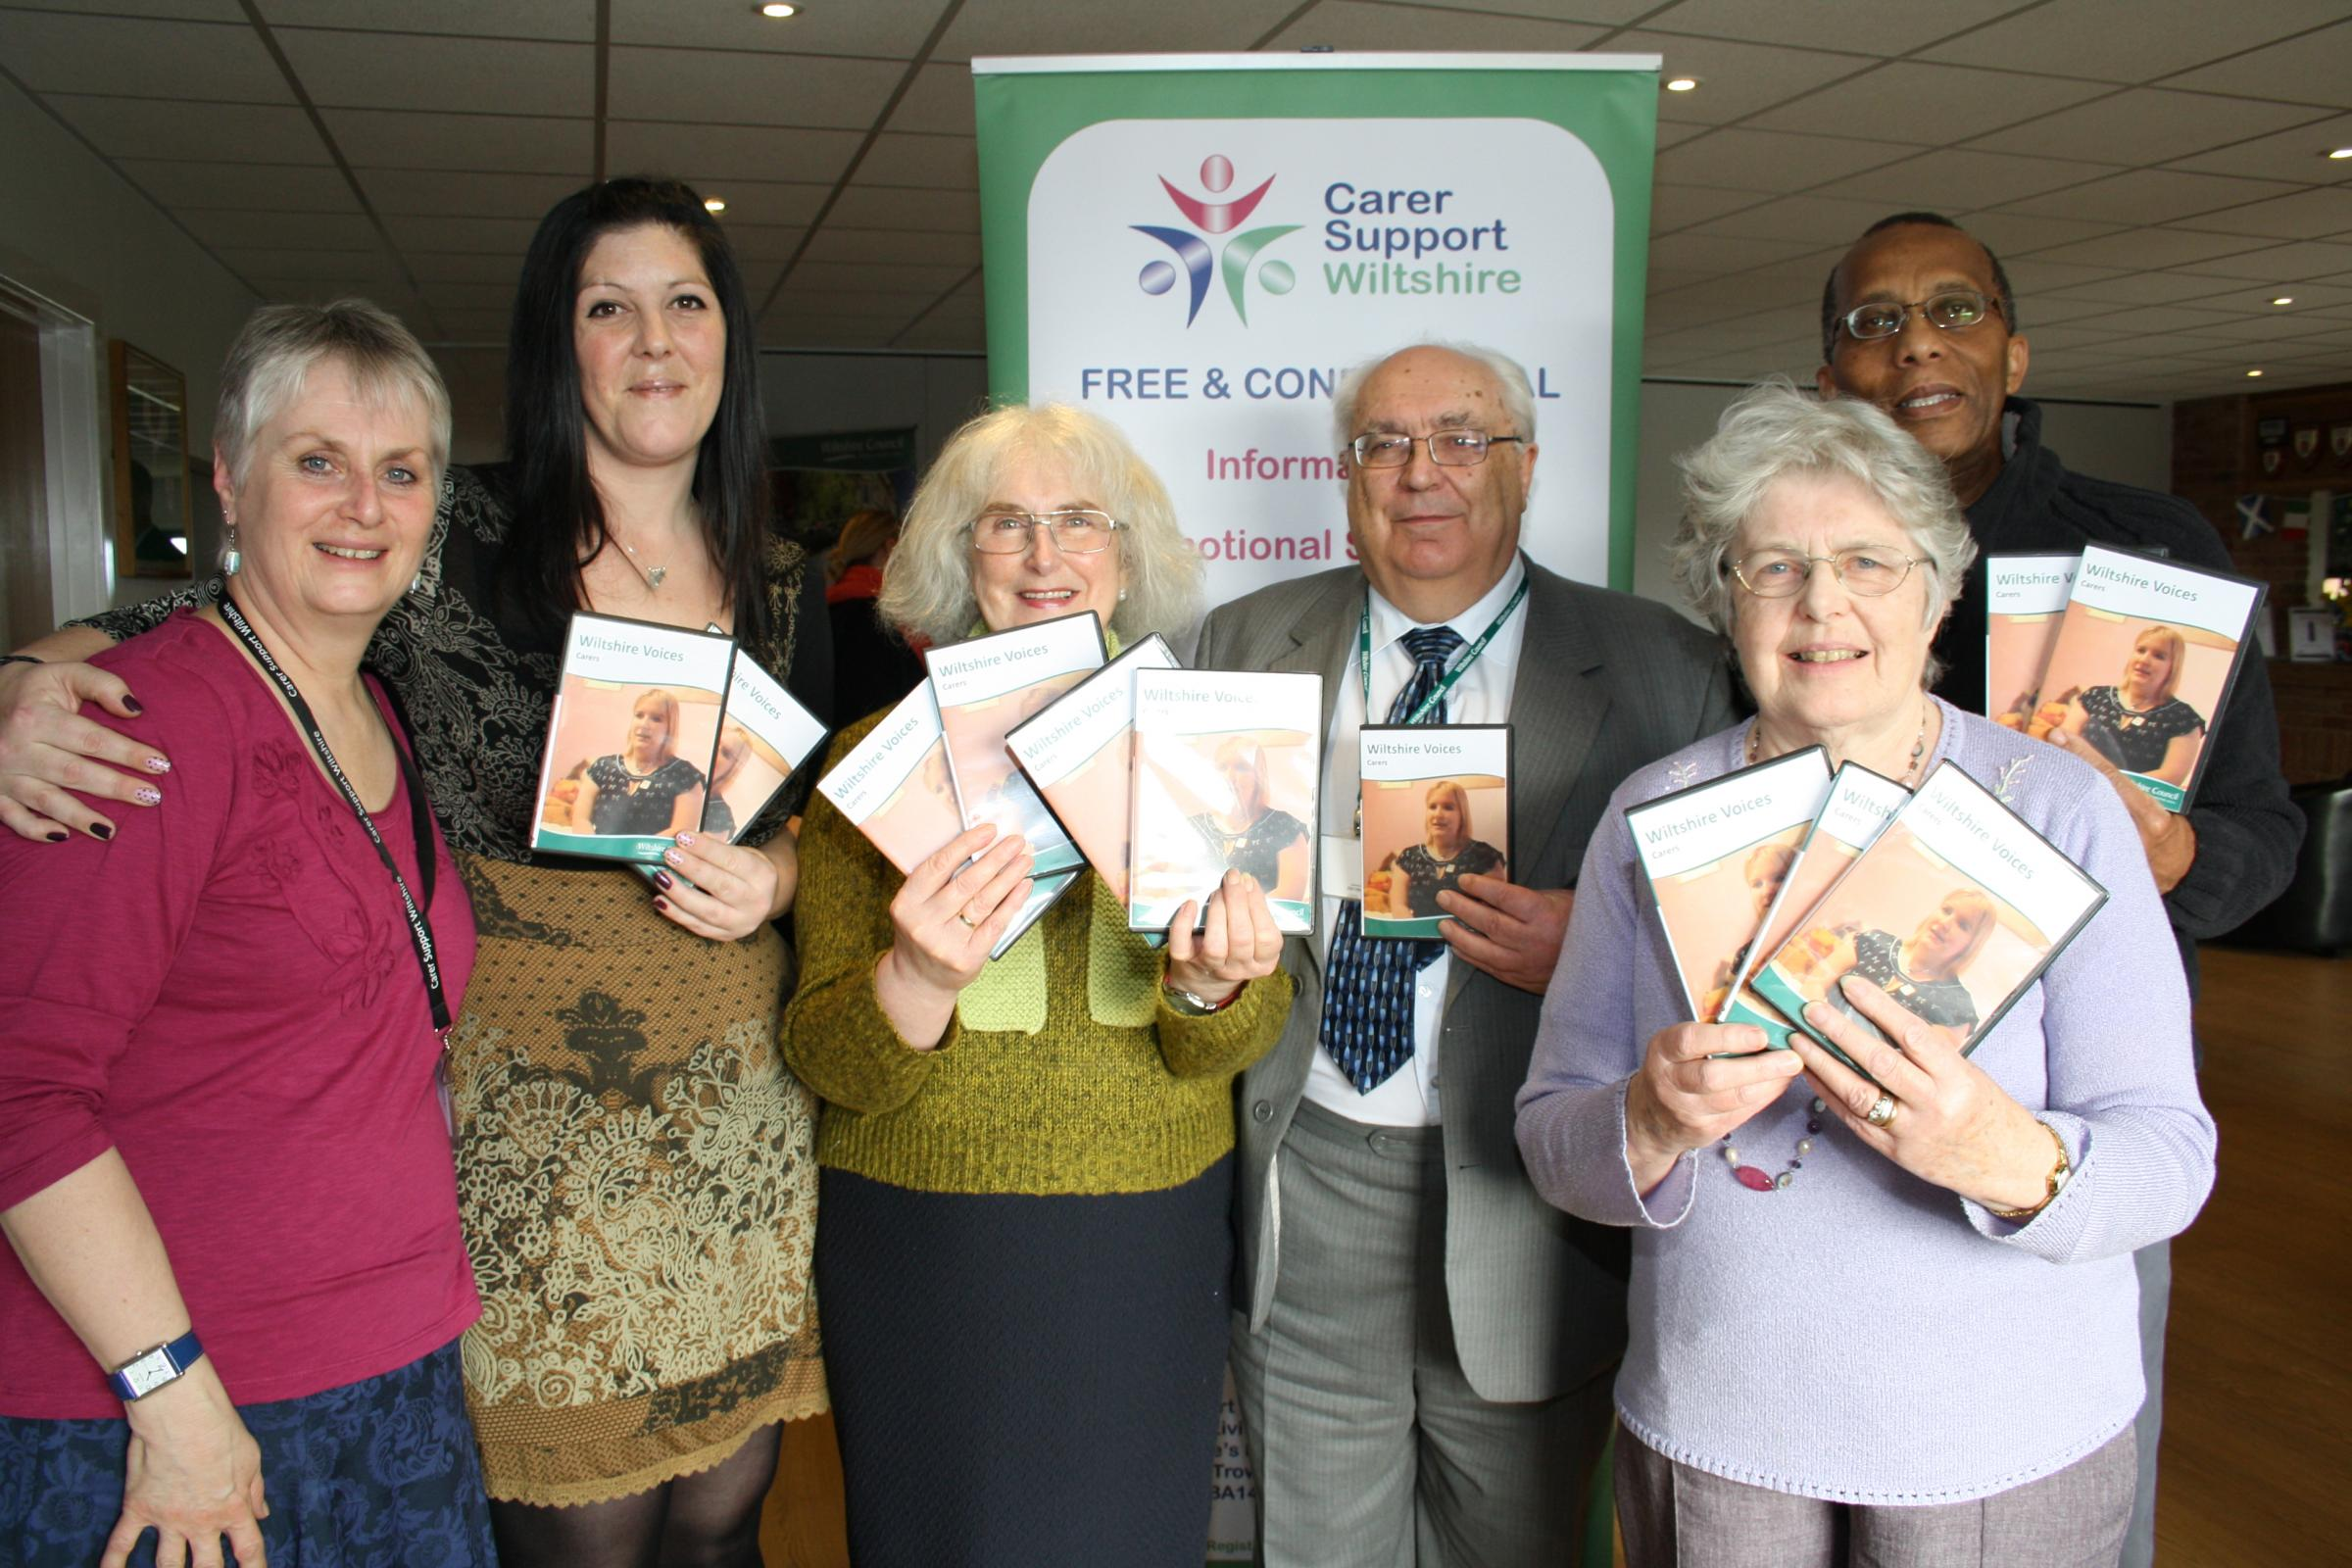 The launch of new DVD about unpaid carers in Wiltshire